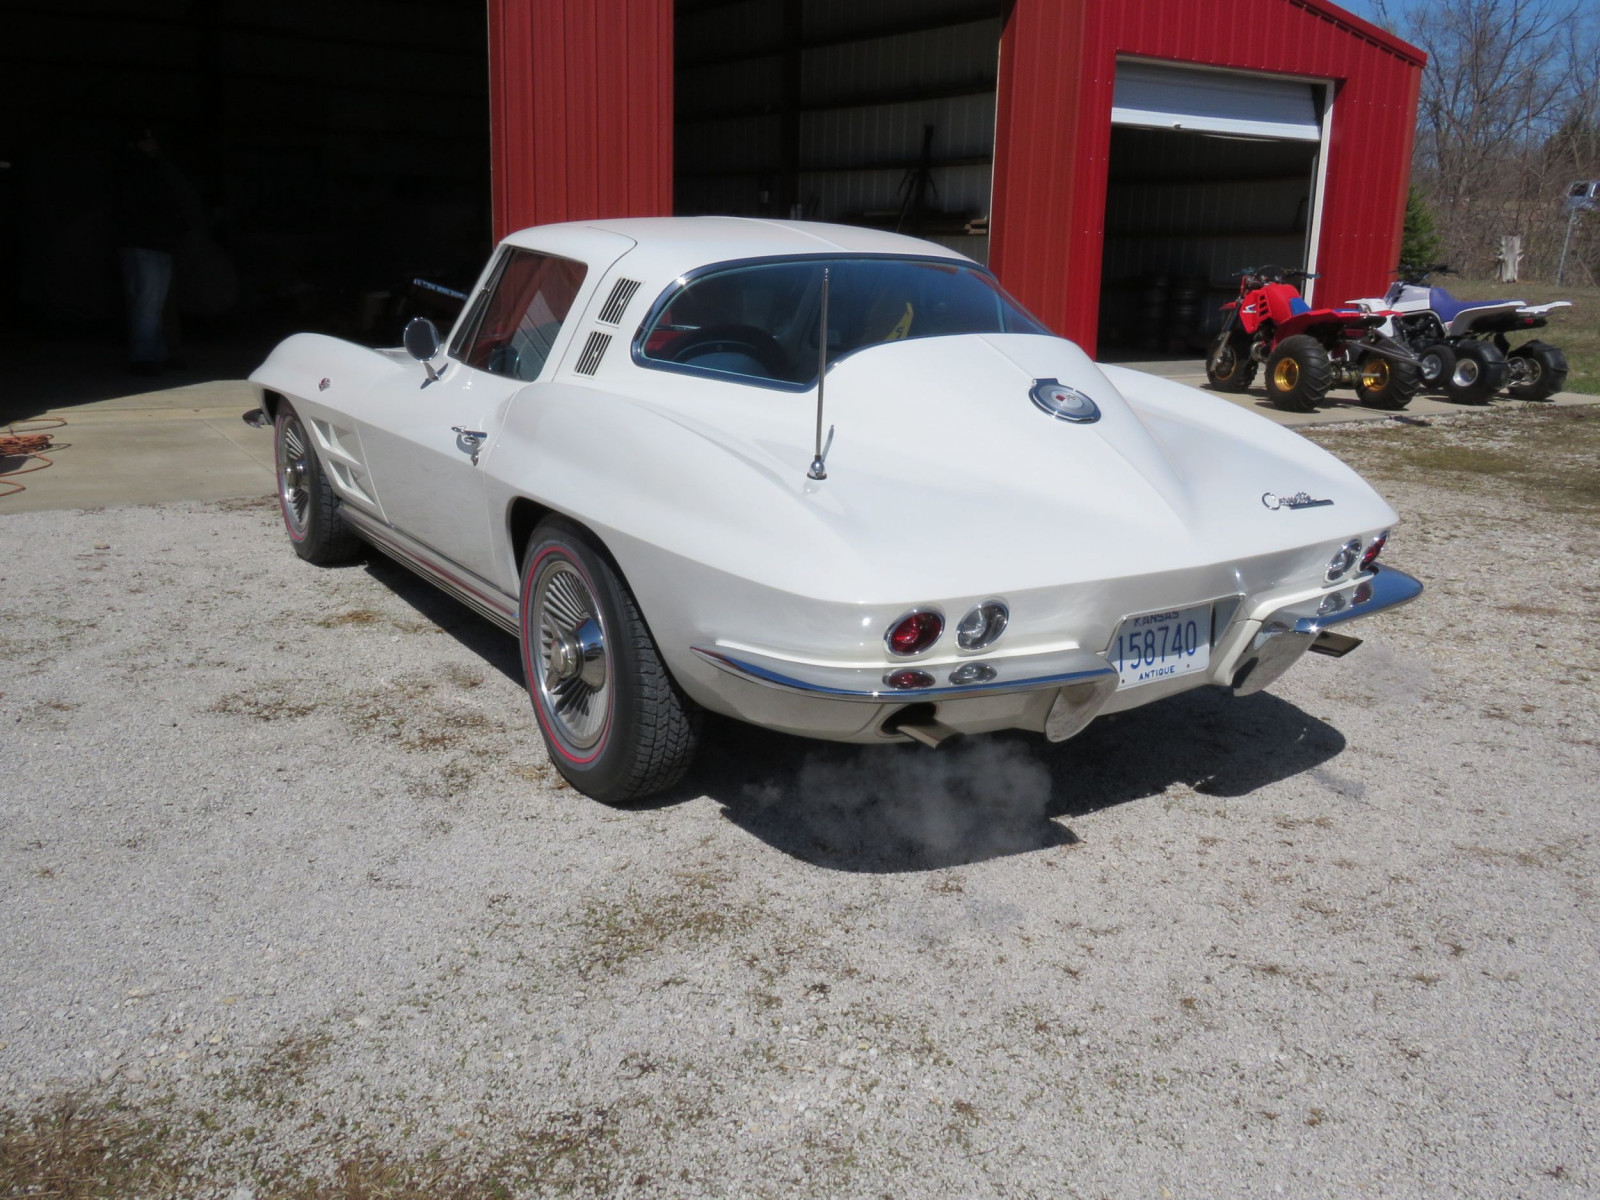 Beautiful 1964 Chevrolet Corvette Sting Ray Coupe - Image 7